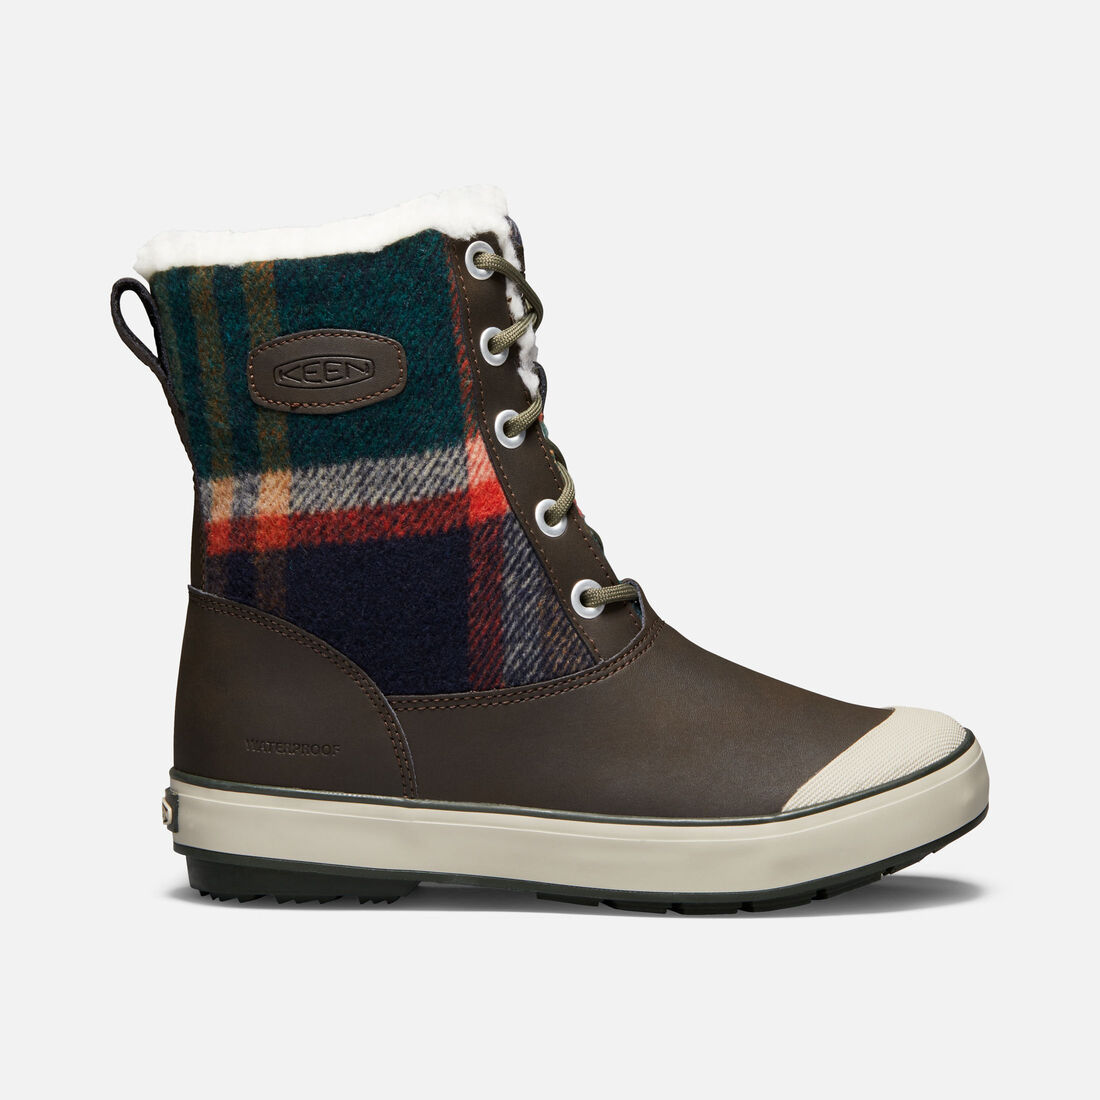 Women's Elsa Boot in Coffee Bean - large view.